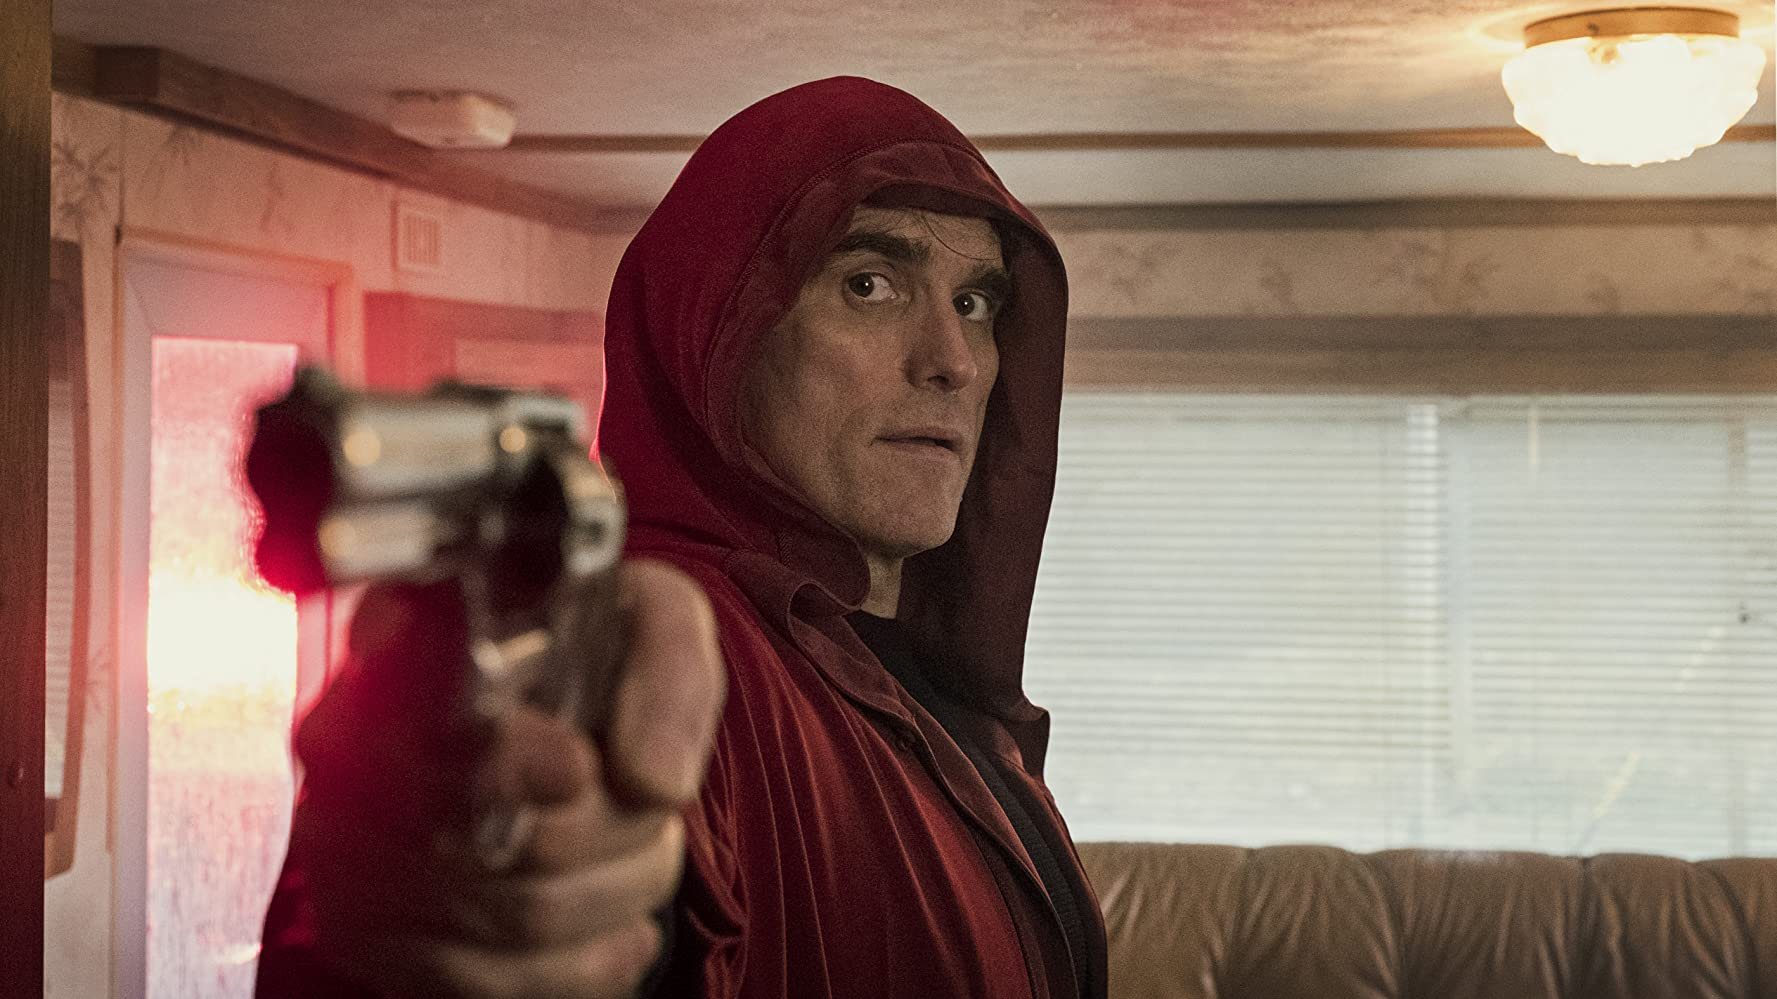 Matt Dillon in The House That Jack Built (2018)